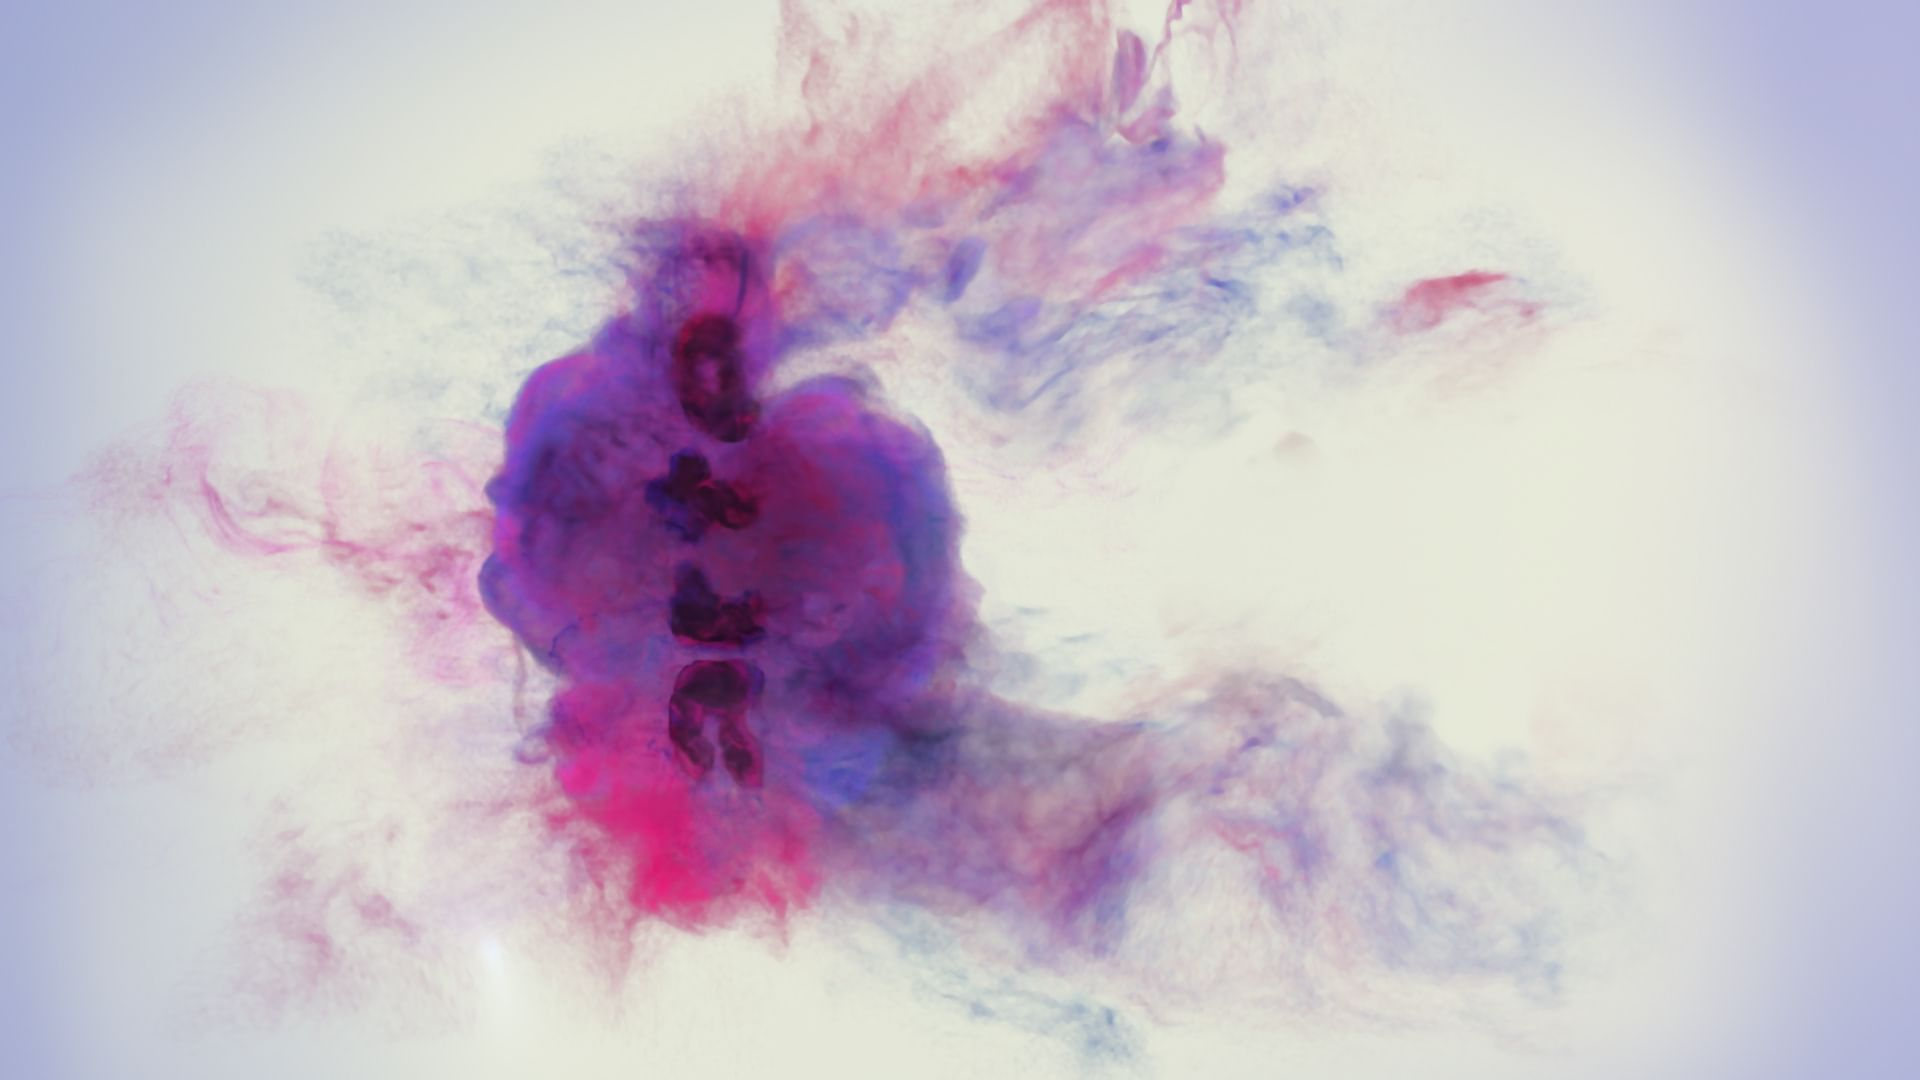 In 26 minutes, Xenius breaks down interesting scientific topics, minus the jargon